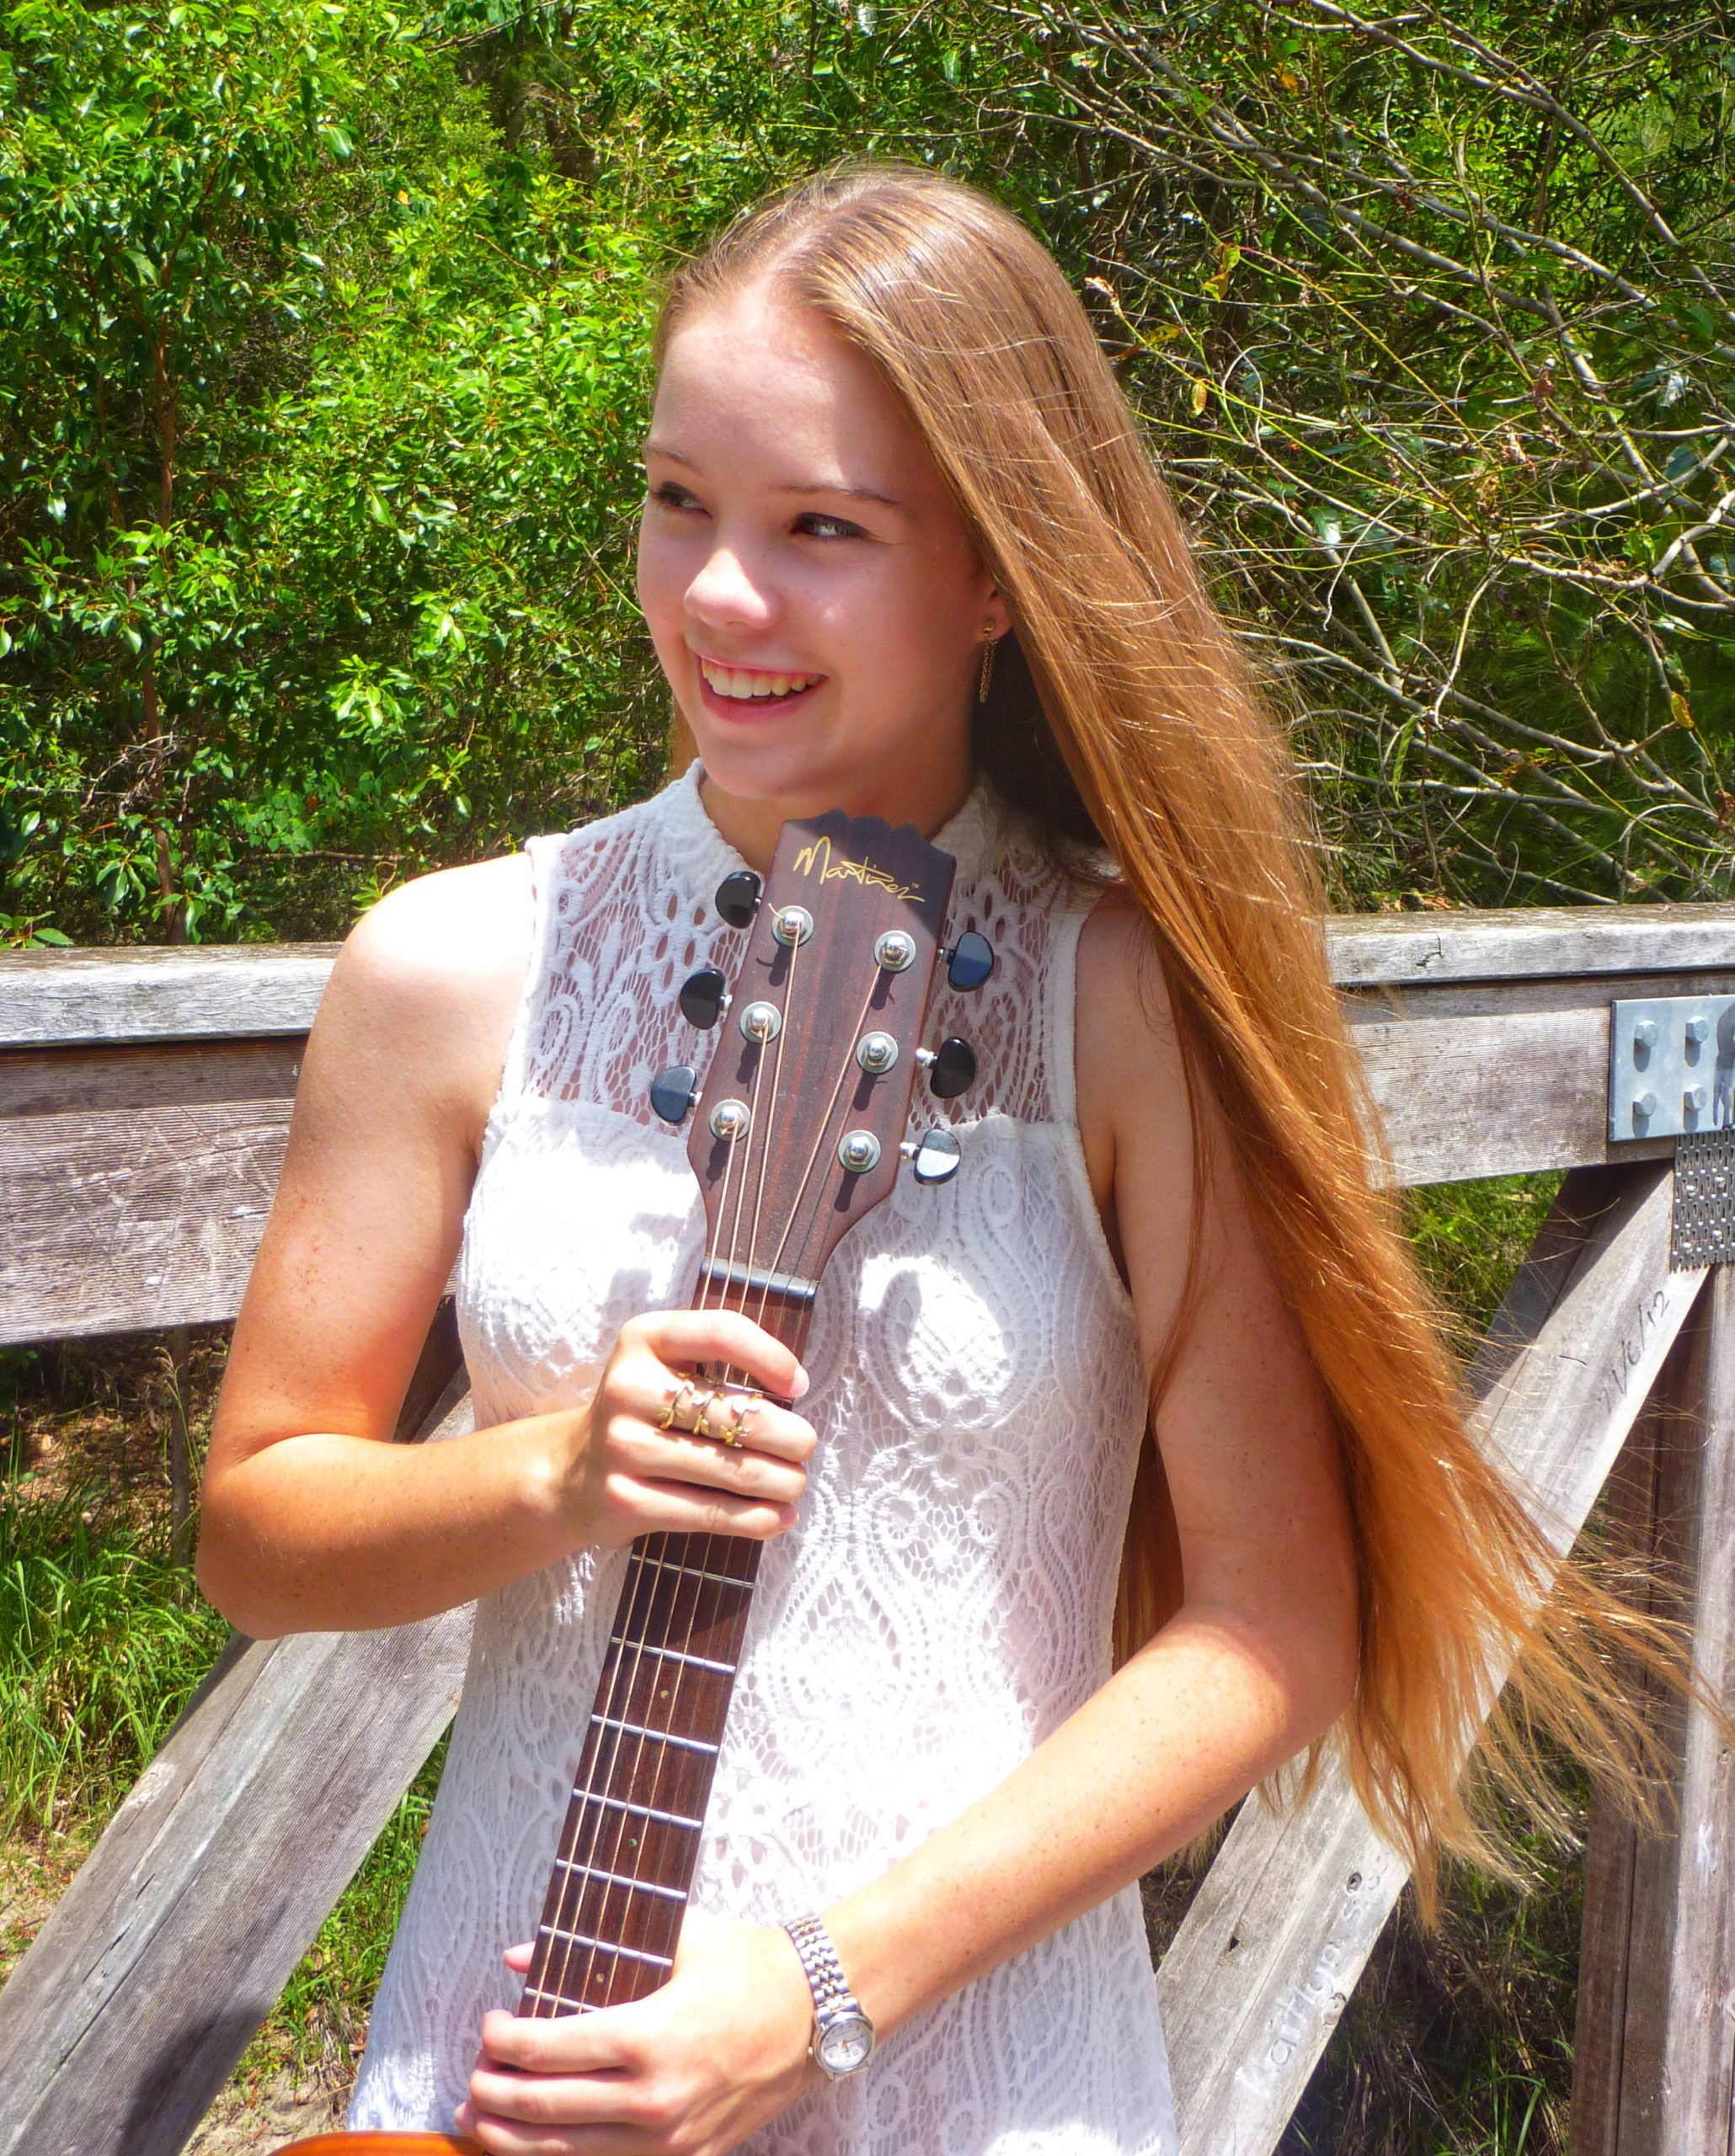 guitar-lessons-ukulele-lessons-cello-lessons-Bailey-Deagon-Guitar-teacher-capalaba-redands-1